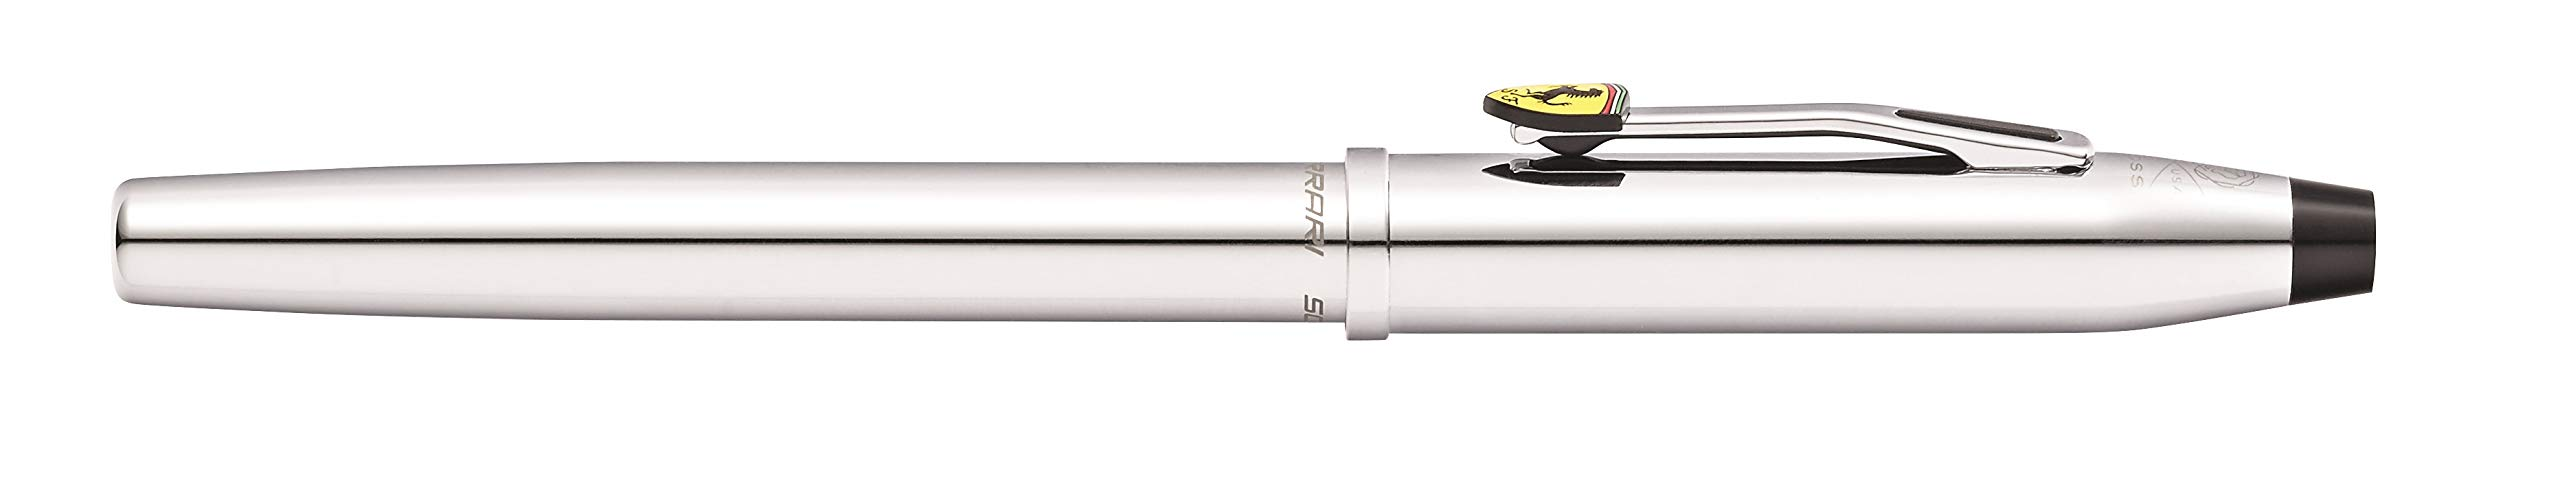 Cross Century II Collection for Scuderia Ferrari - Polished Chrome Rollerball Pen by Cross (Image #4)